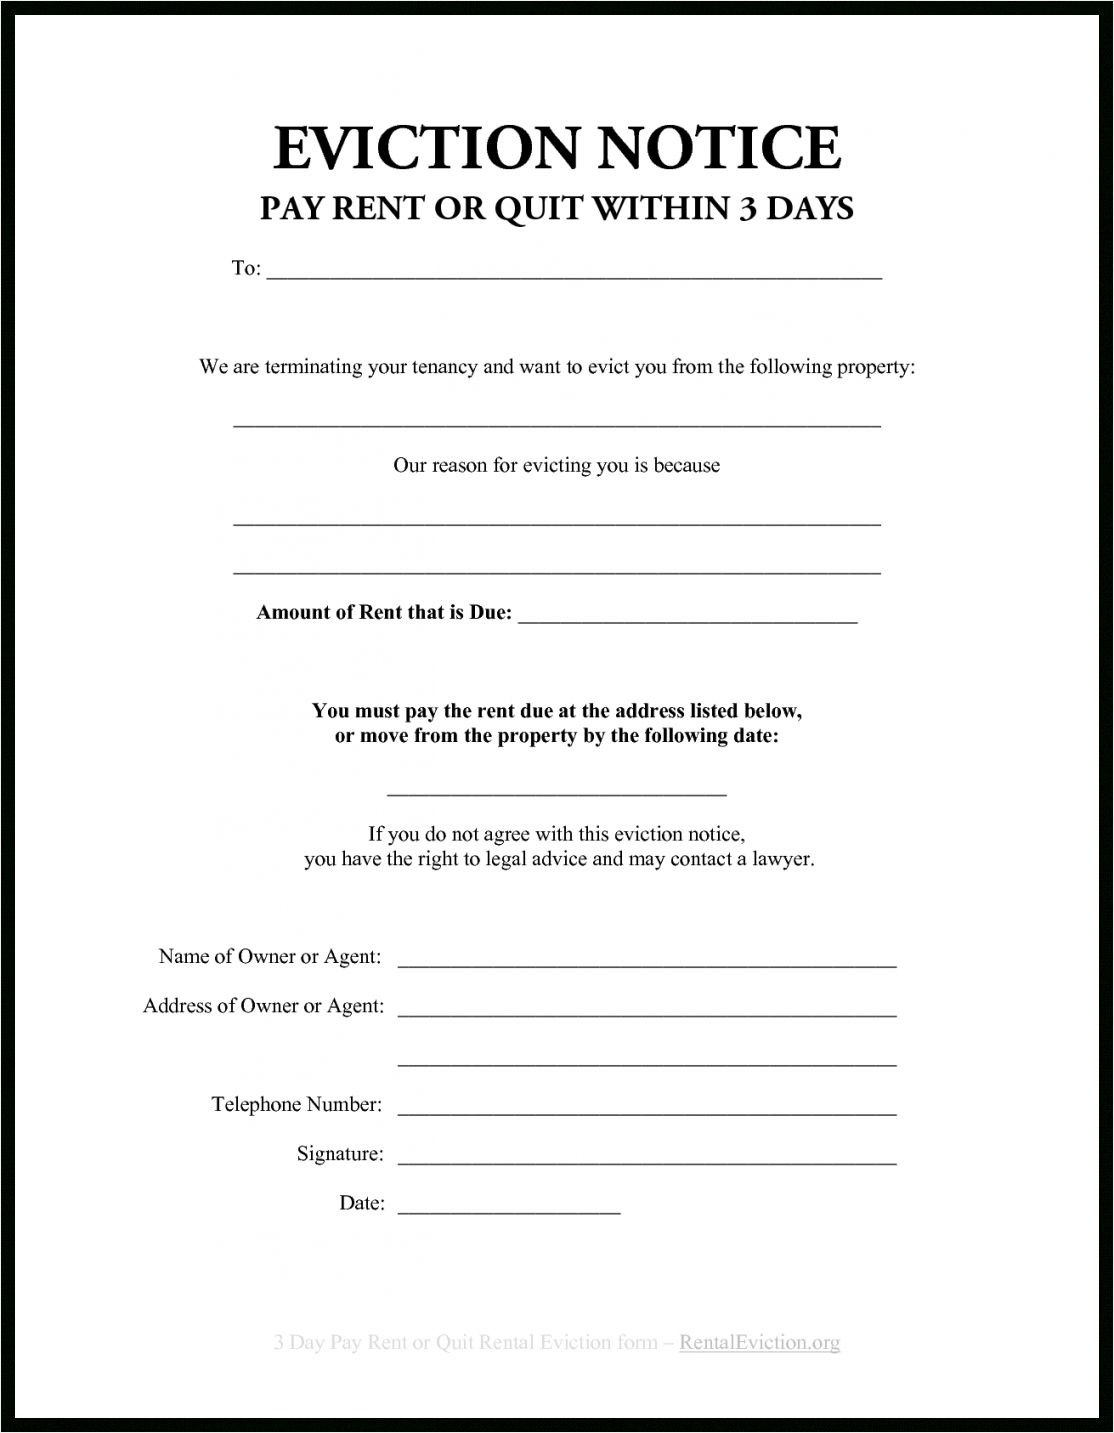 Browse Our Image Of 30 Day Eviction Letter Template Eviction Notice 30 Day Eviction Notice Letter Templates Free Notice to quit form pa